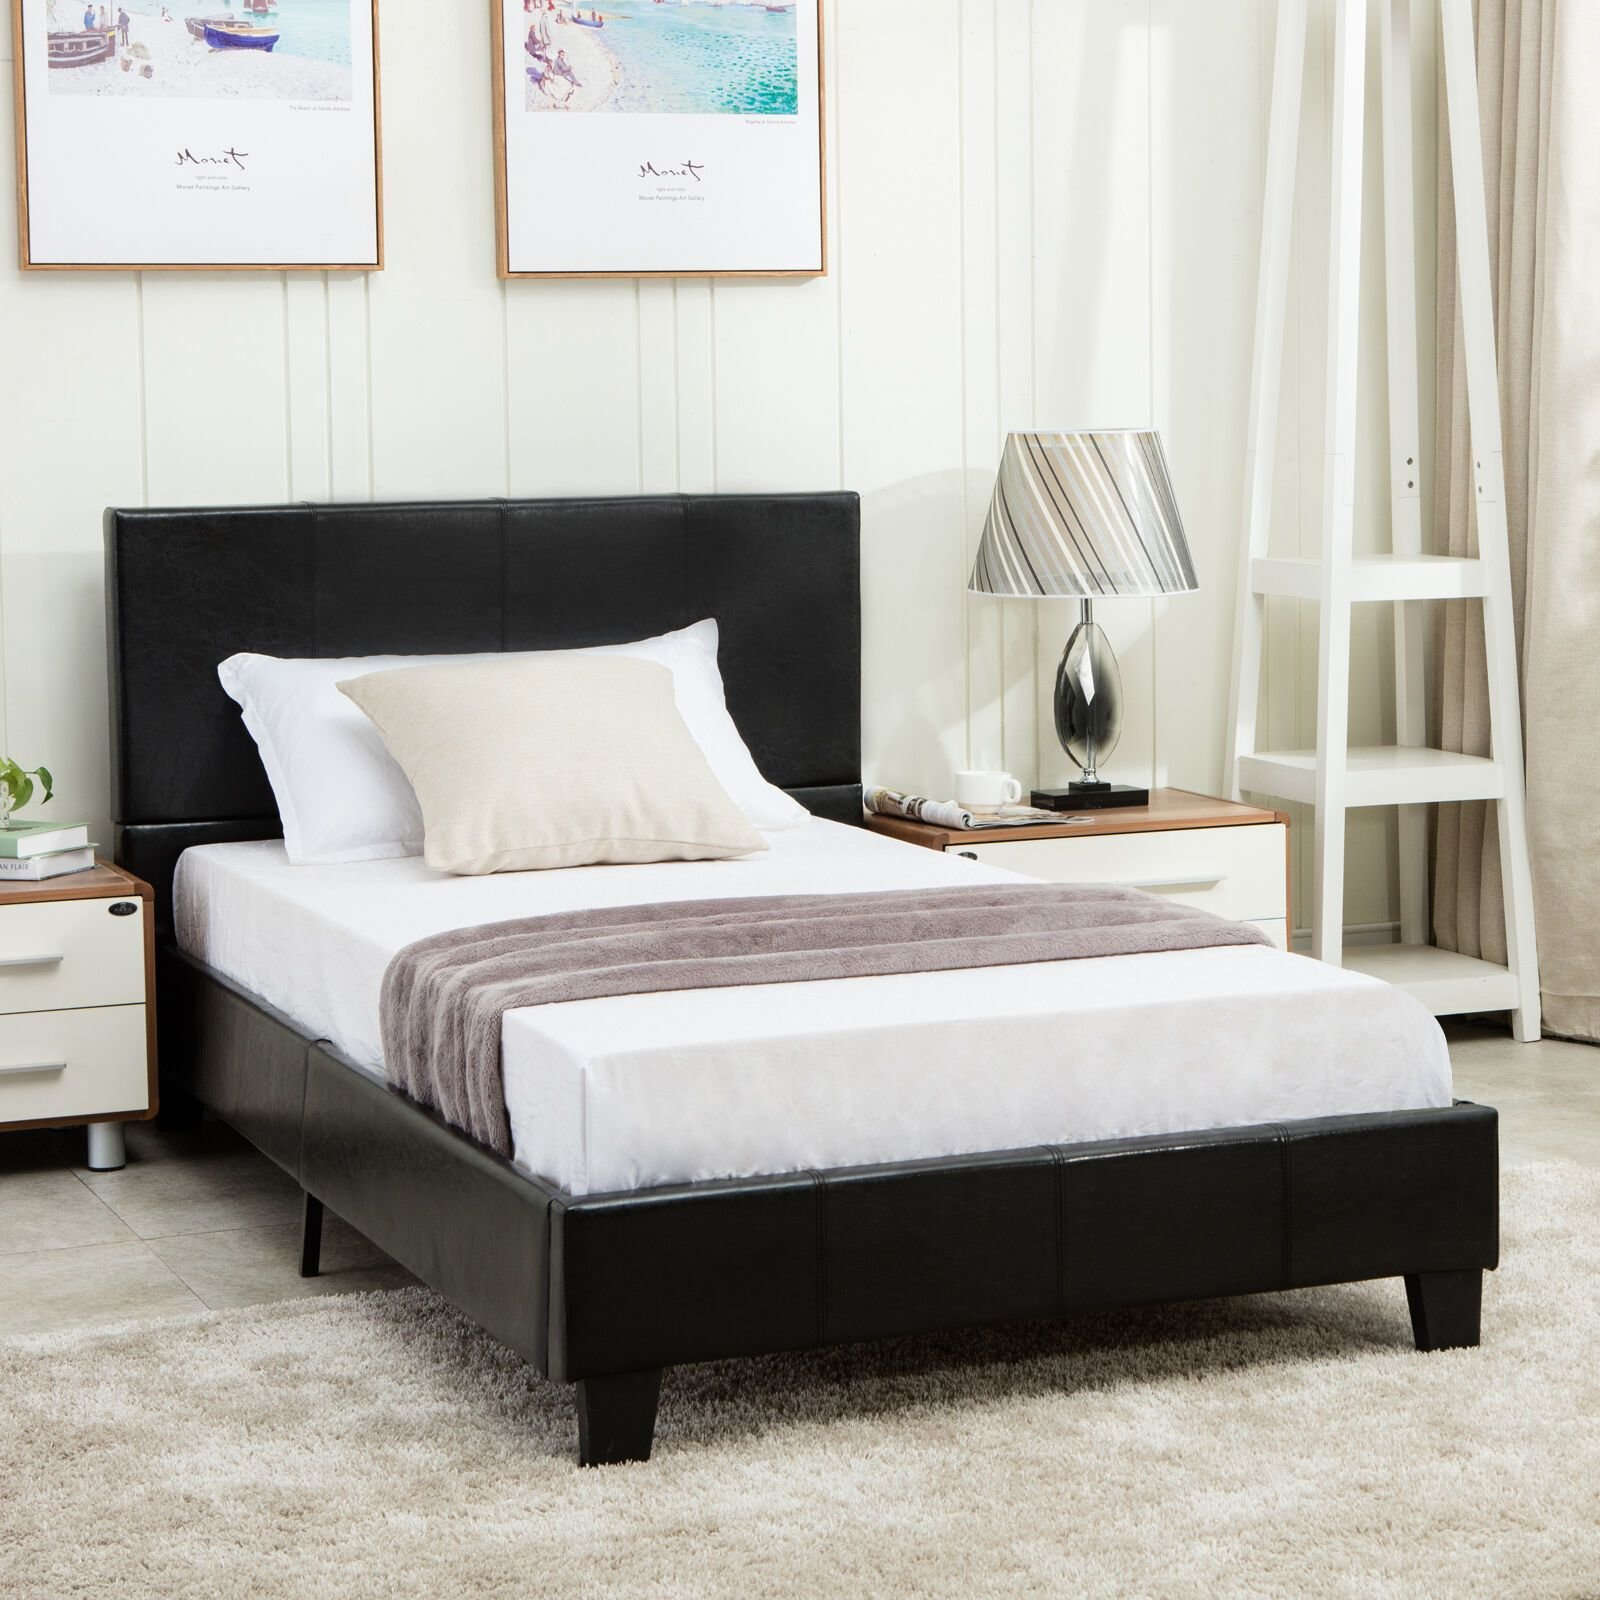 Best Full Size Faux Leather Platform Bed Frame Slats With Pictures